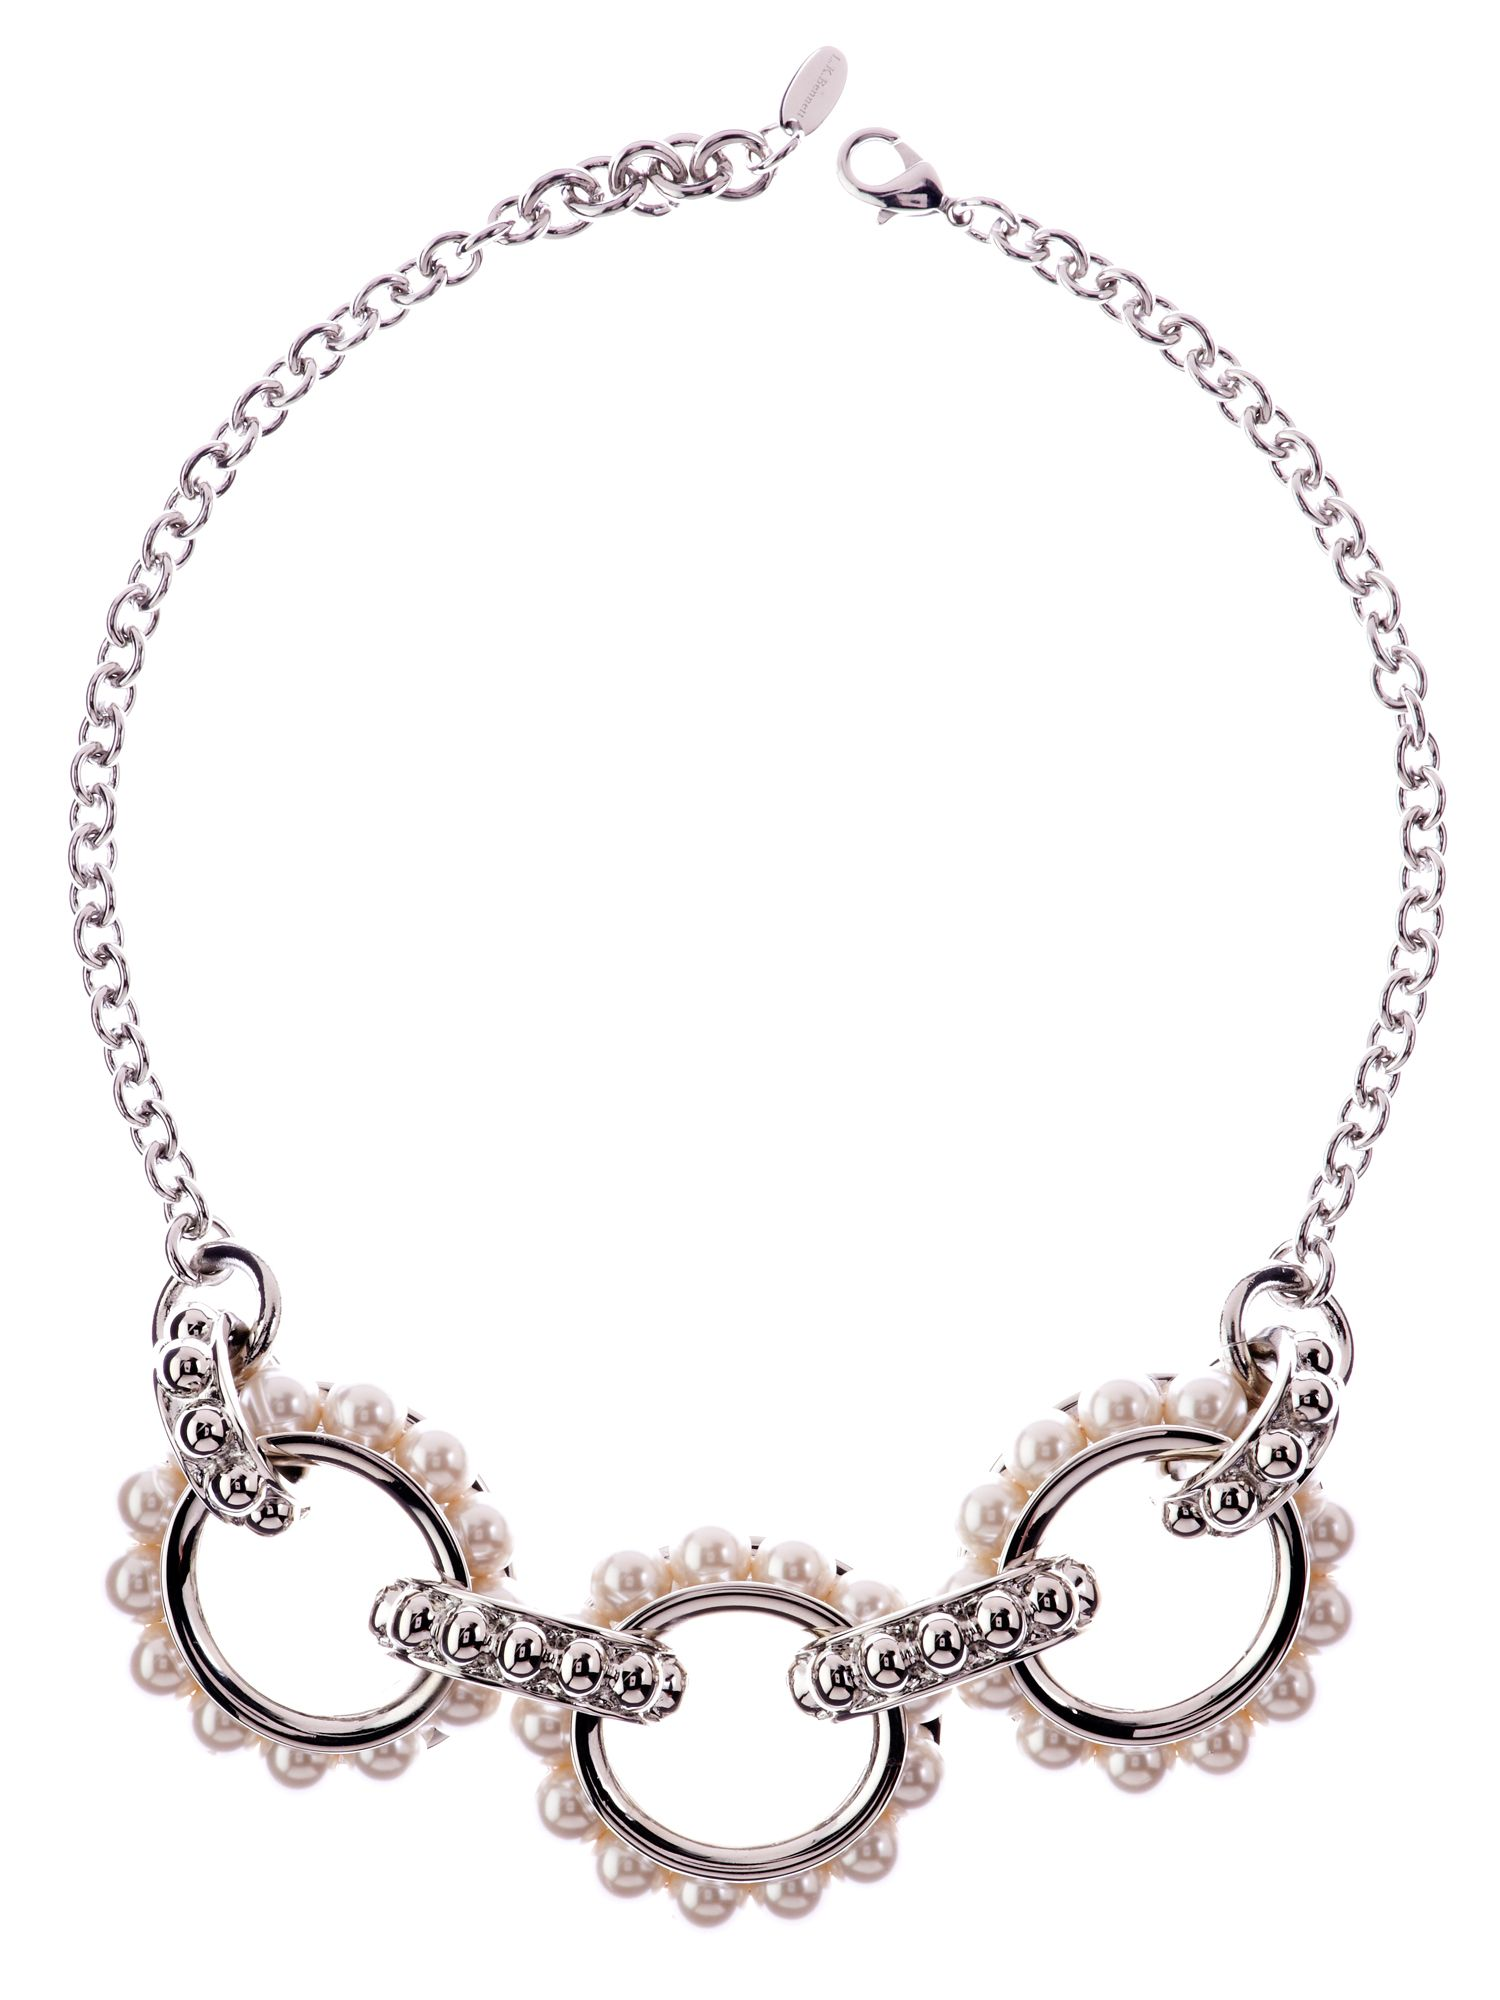 L.K. Bennett Statement pearl chain necklace